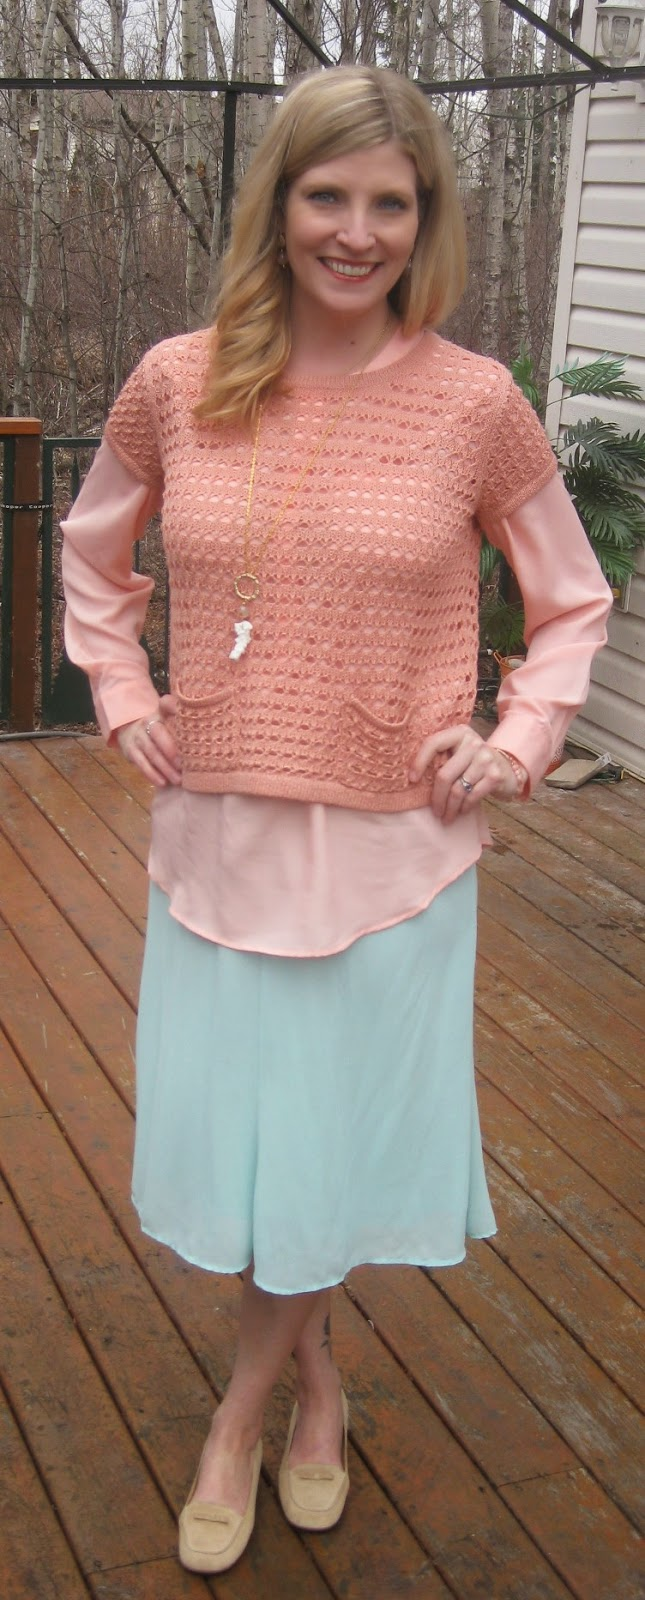 http://vvboutiquestyle.blogspot.ca/2014/04/looking-lucky-easter-pastels.html